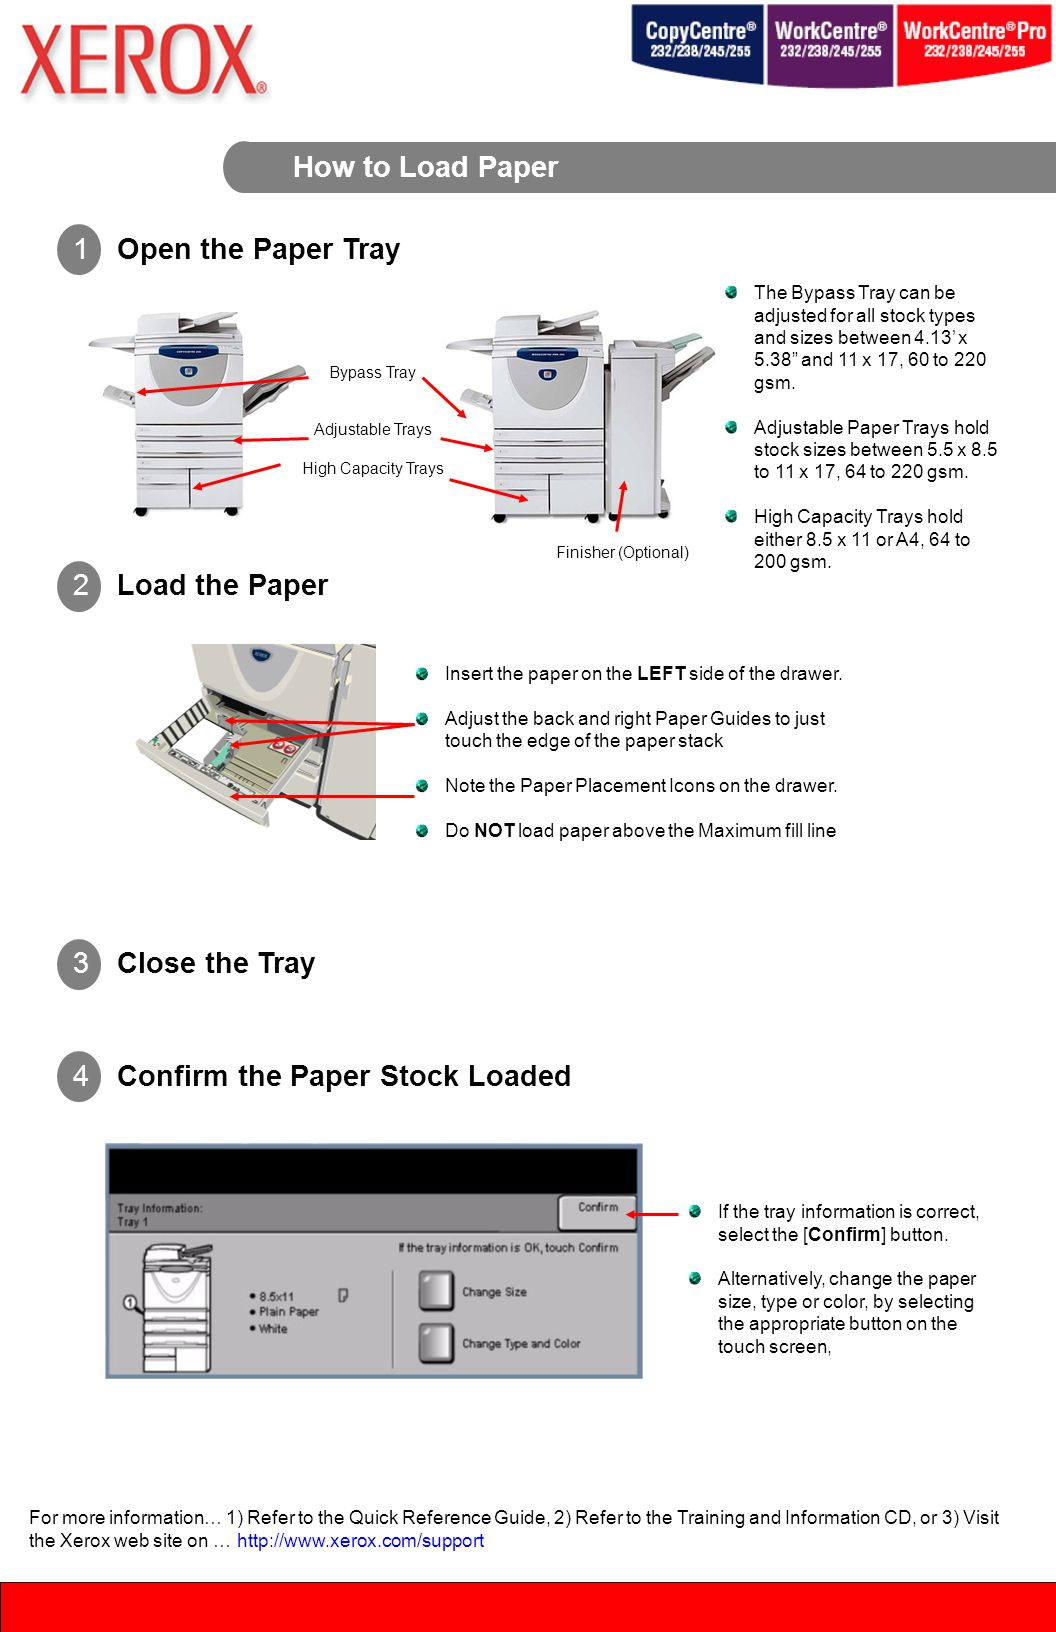 How to Load Paper Finisher (Optional) Bypass Tray Adjustable Trays High Capacity Trays The Bypass Tray can be adjusted for all stock types and sizes b